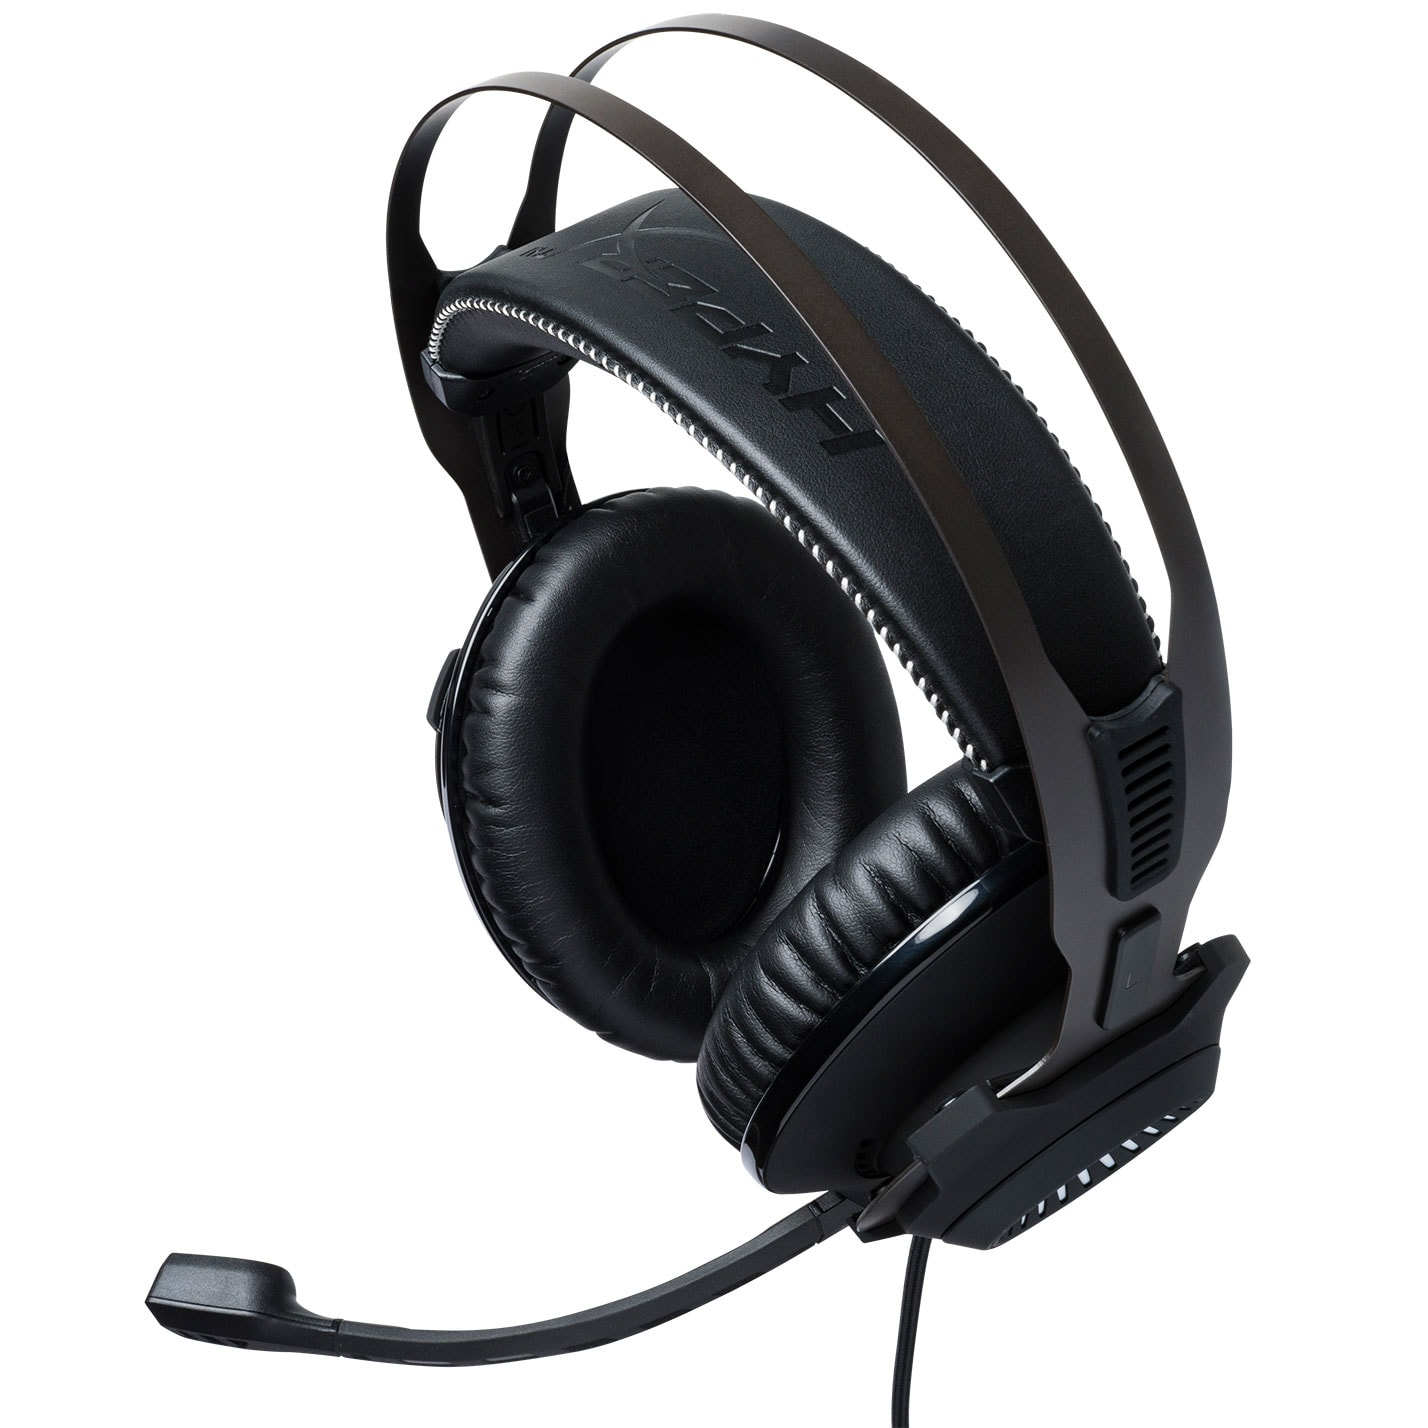 HyperX Cloud Revolver S Gaming Headset (Gun Metal) 7.1 Surround - Micro-casque - 2